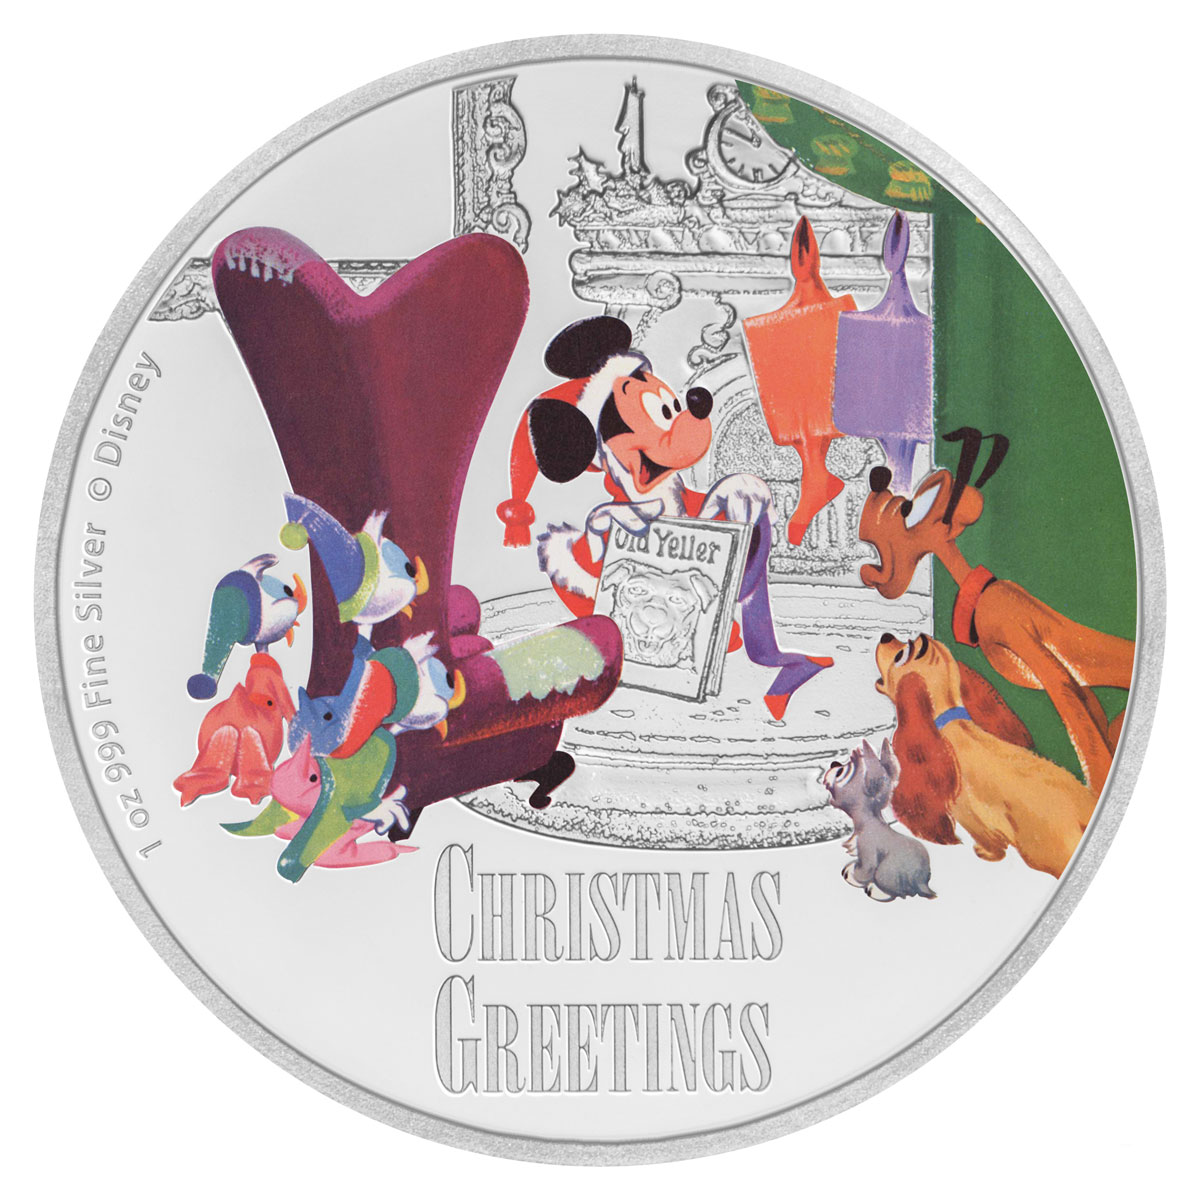 2017 Niue Disney Season's Greetings 1 oz Silver Colorized Proof $2 Coin GEM Proof OGP